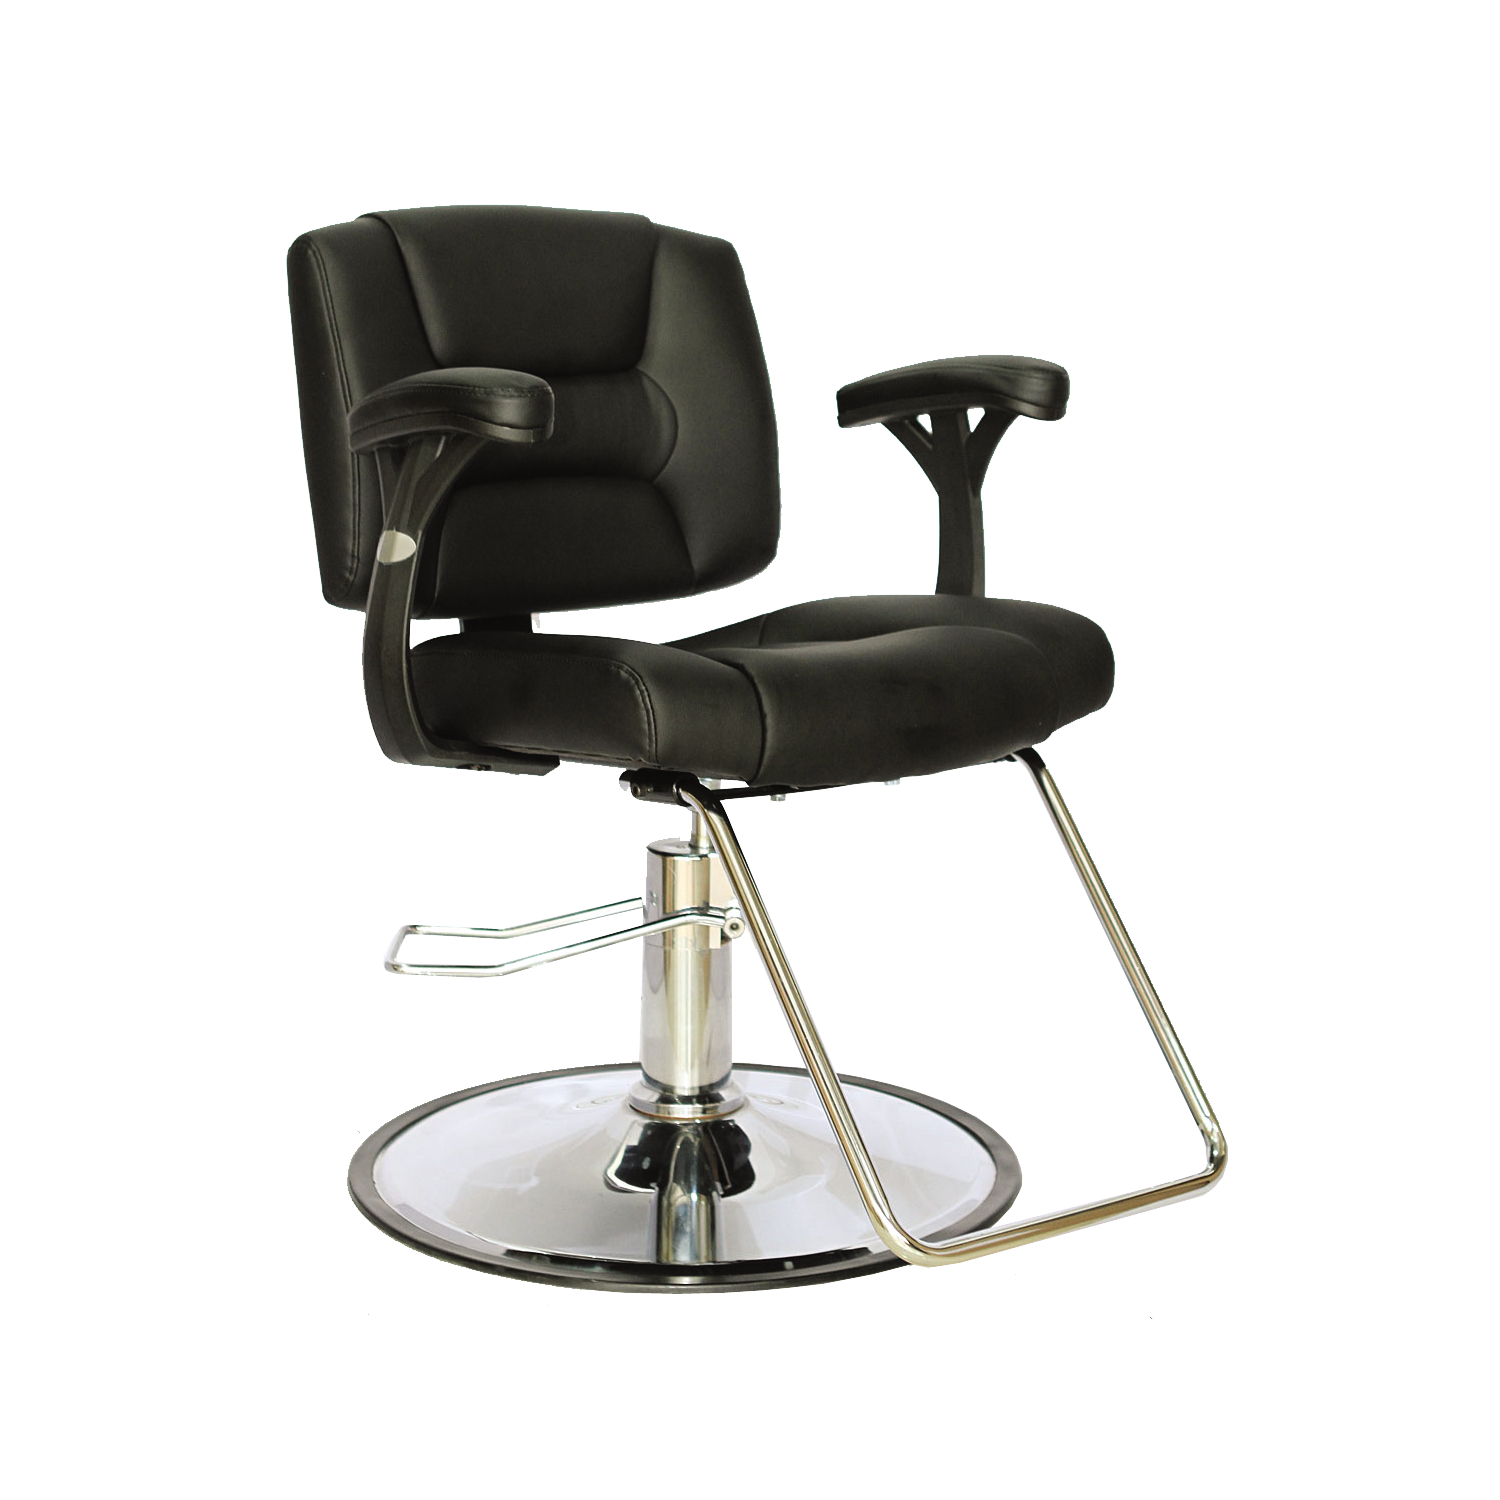 SallyBeauty Hair Styling Salon Equipment and Furniture